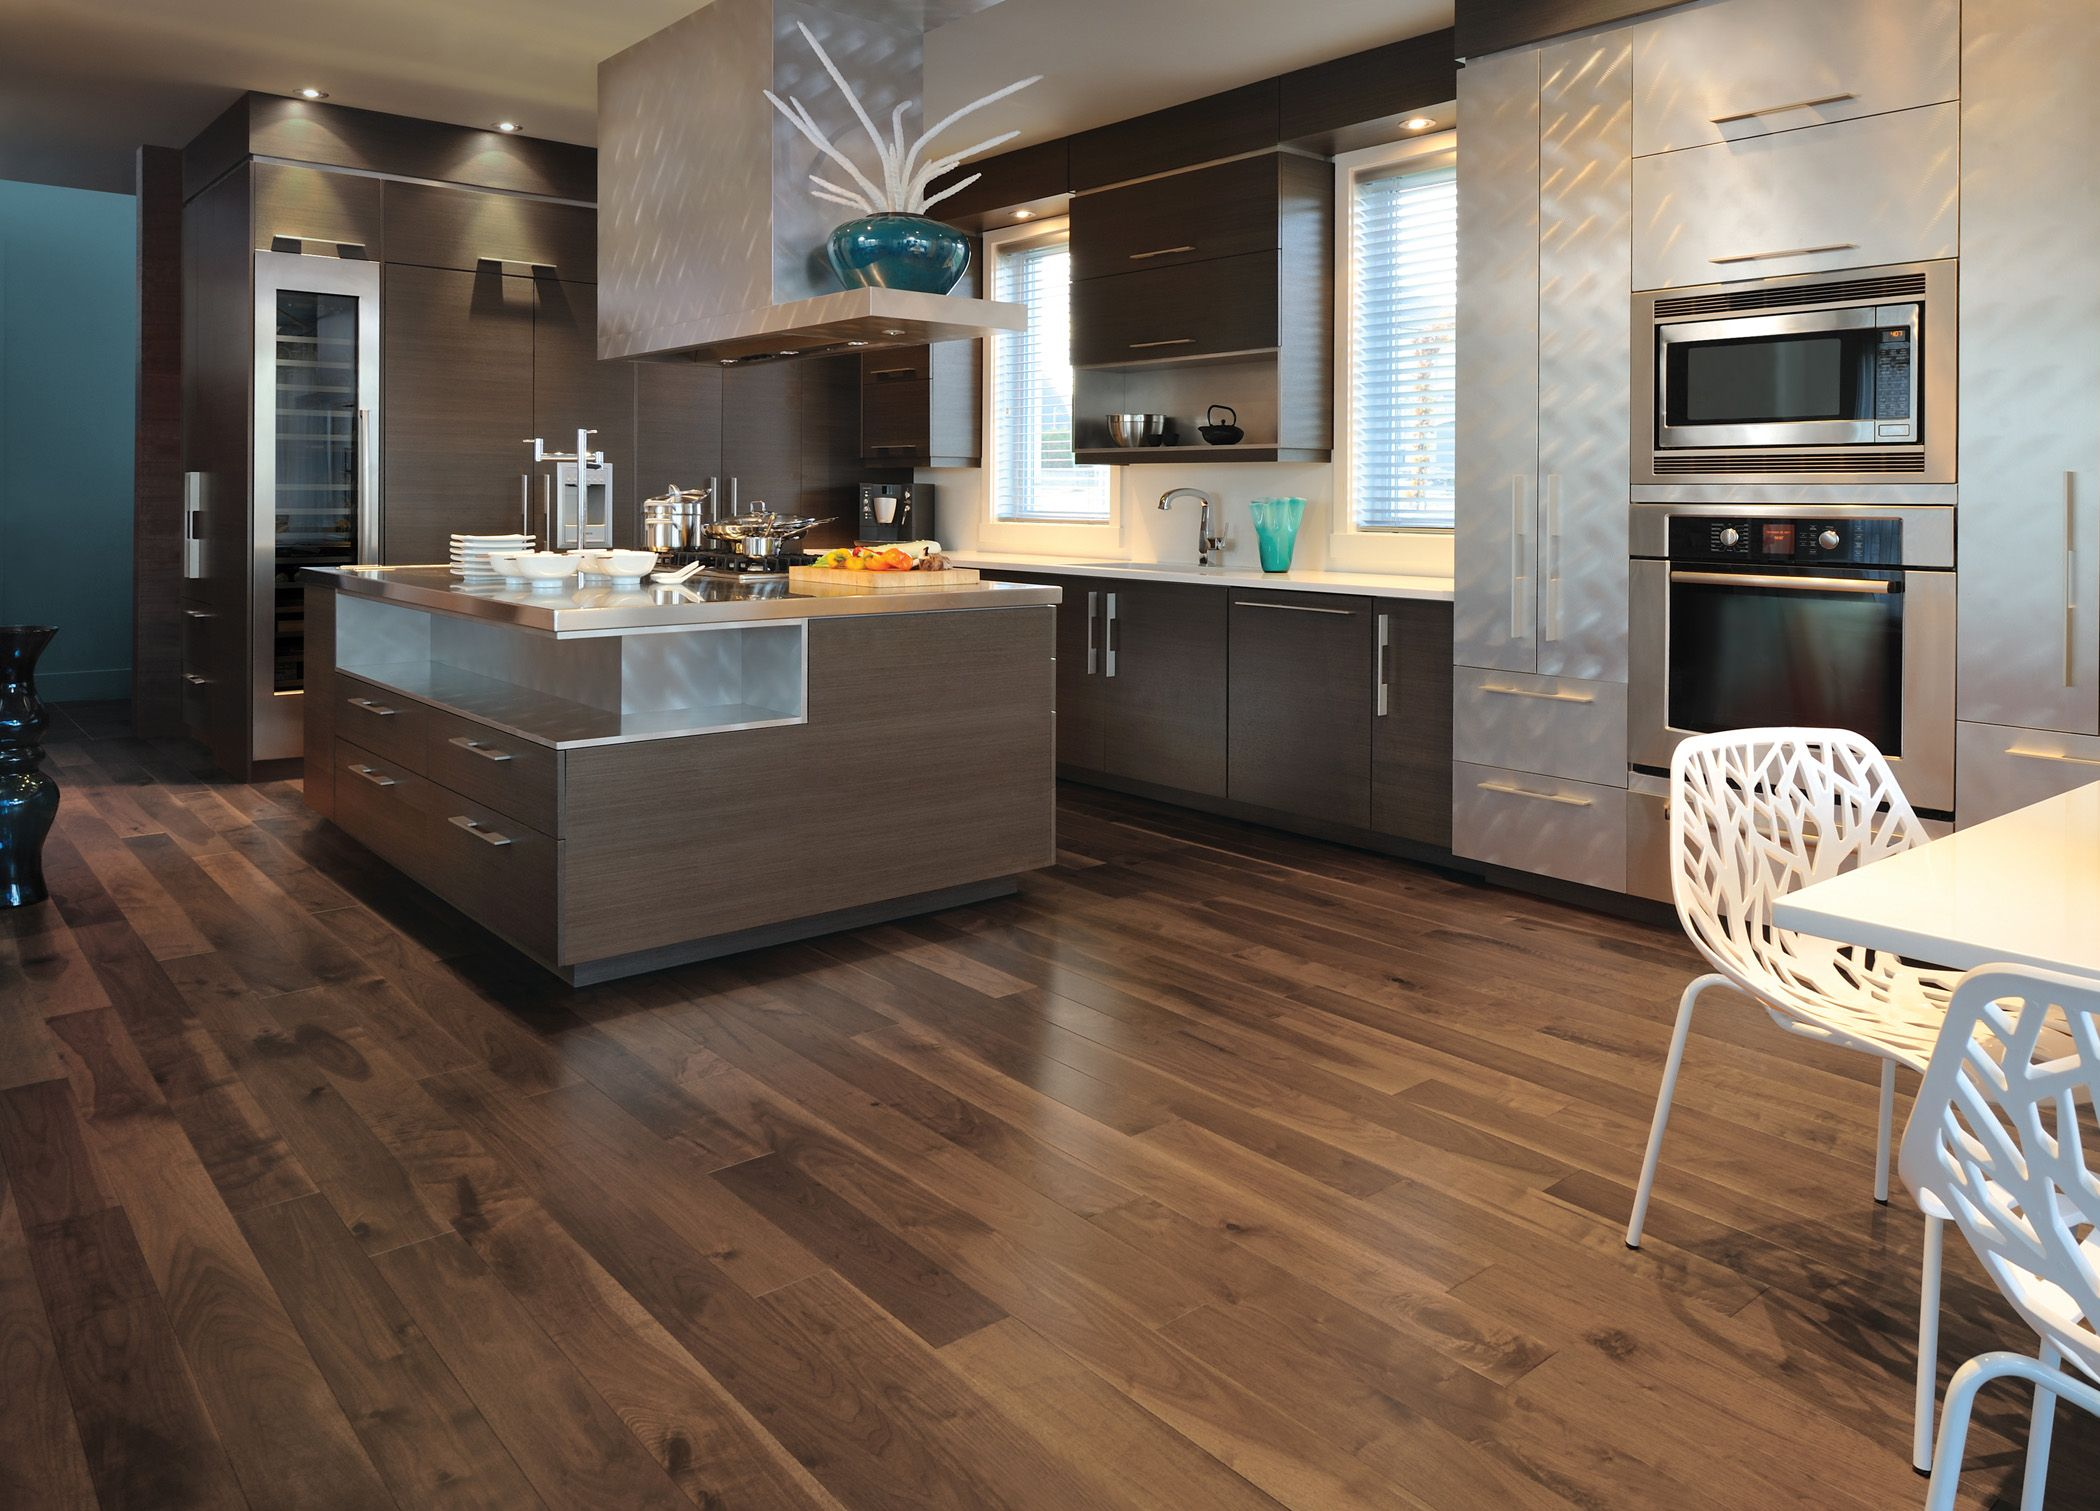 Walnut Kitchen Flooring Ideas Part - 22: Knotty Walnut Savanna - Inspiration Collection By Mirage Floors